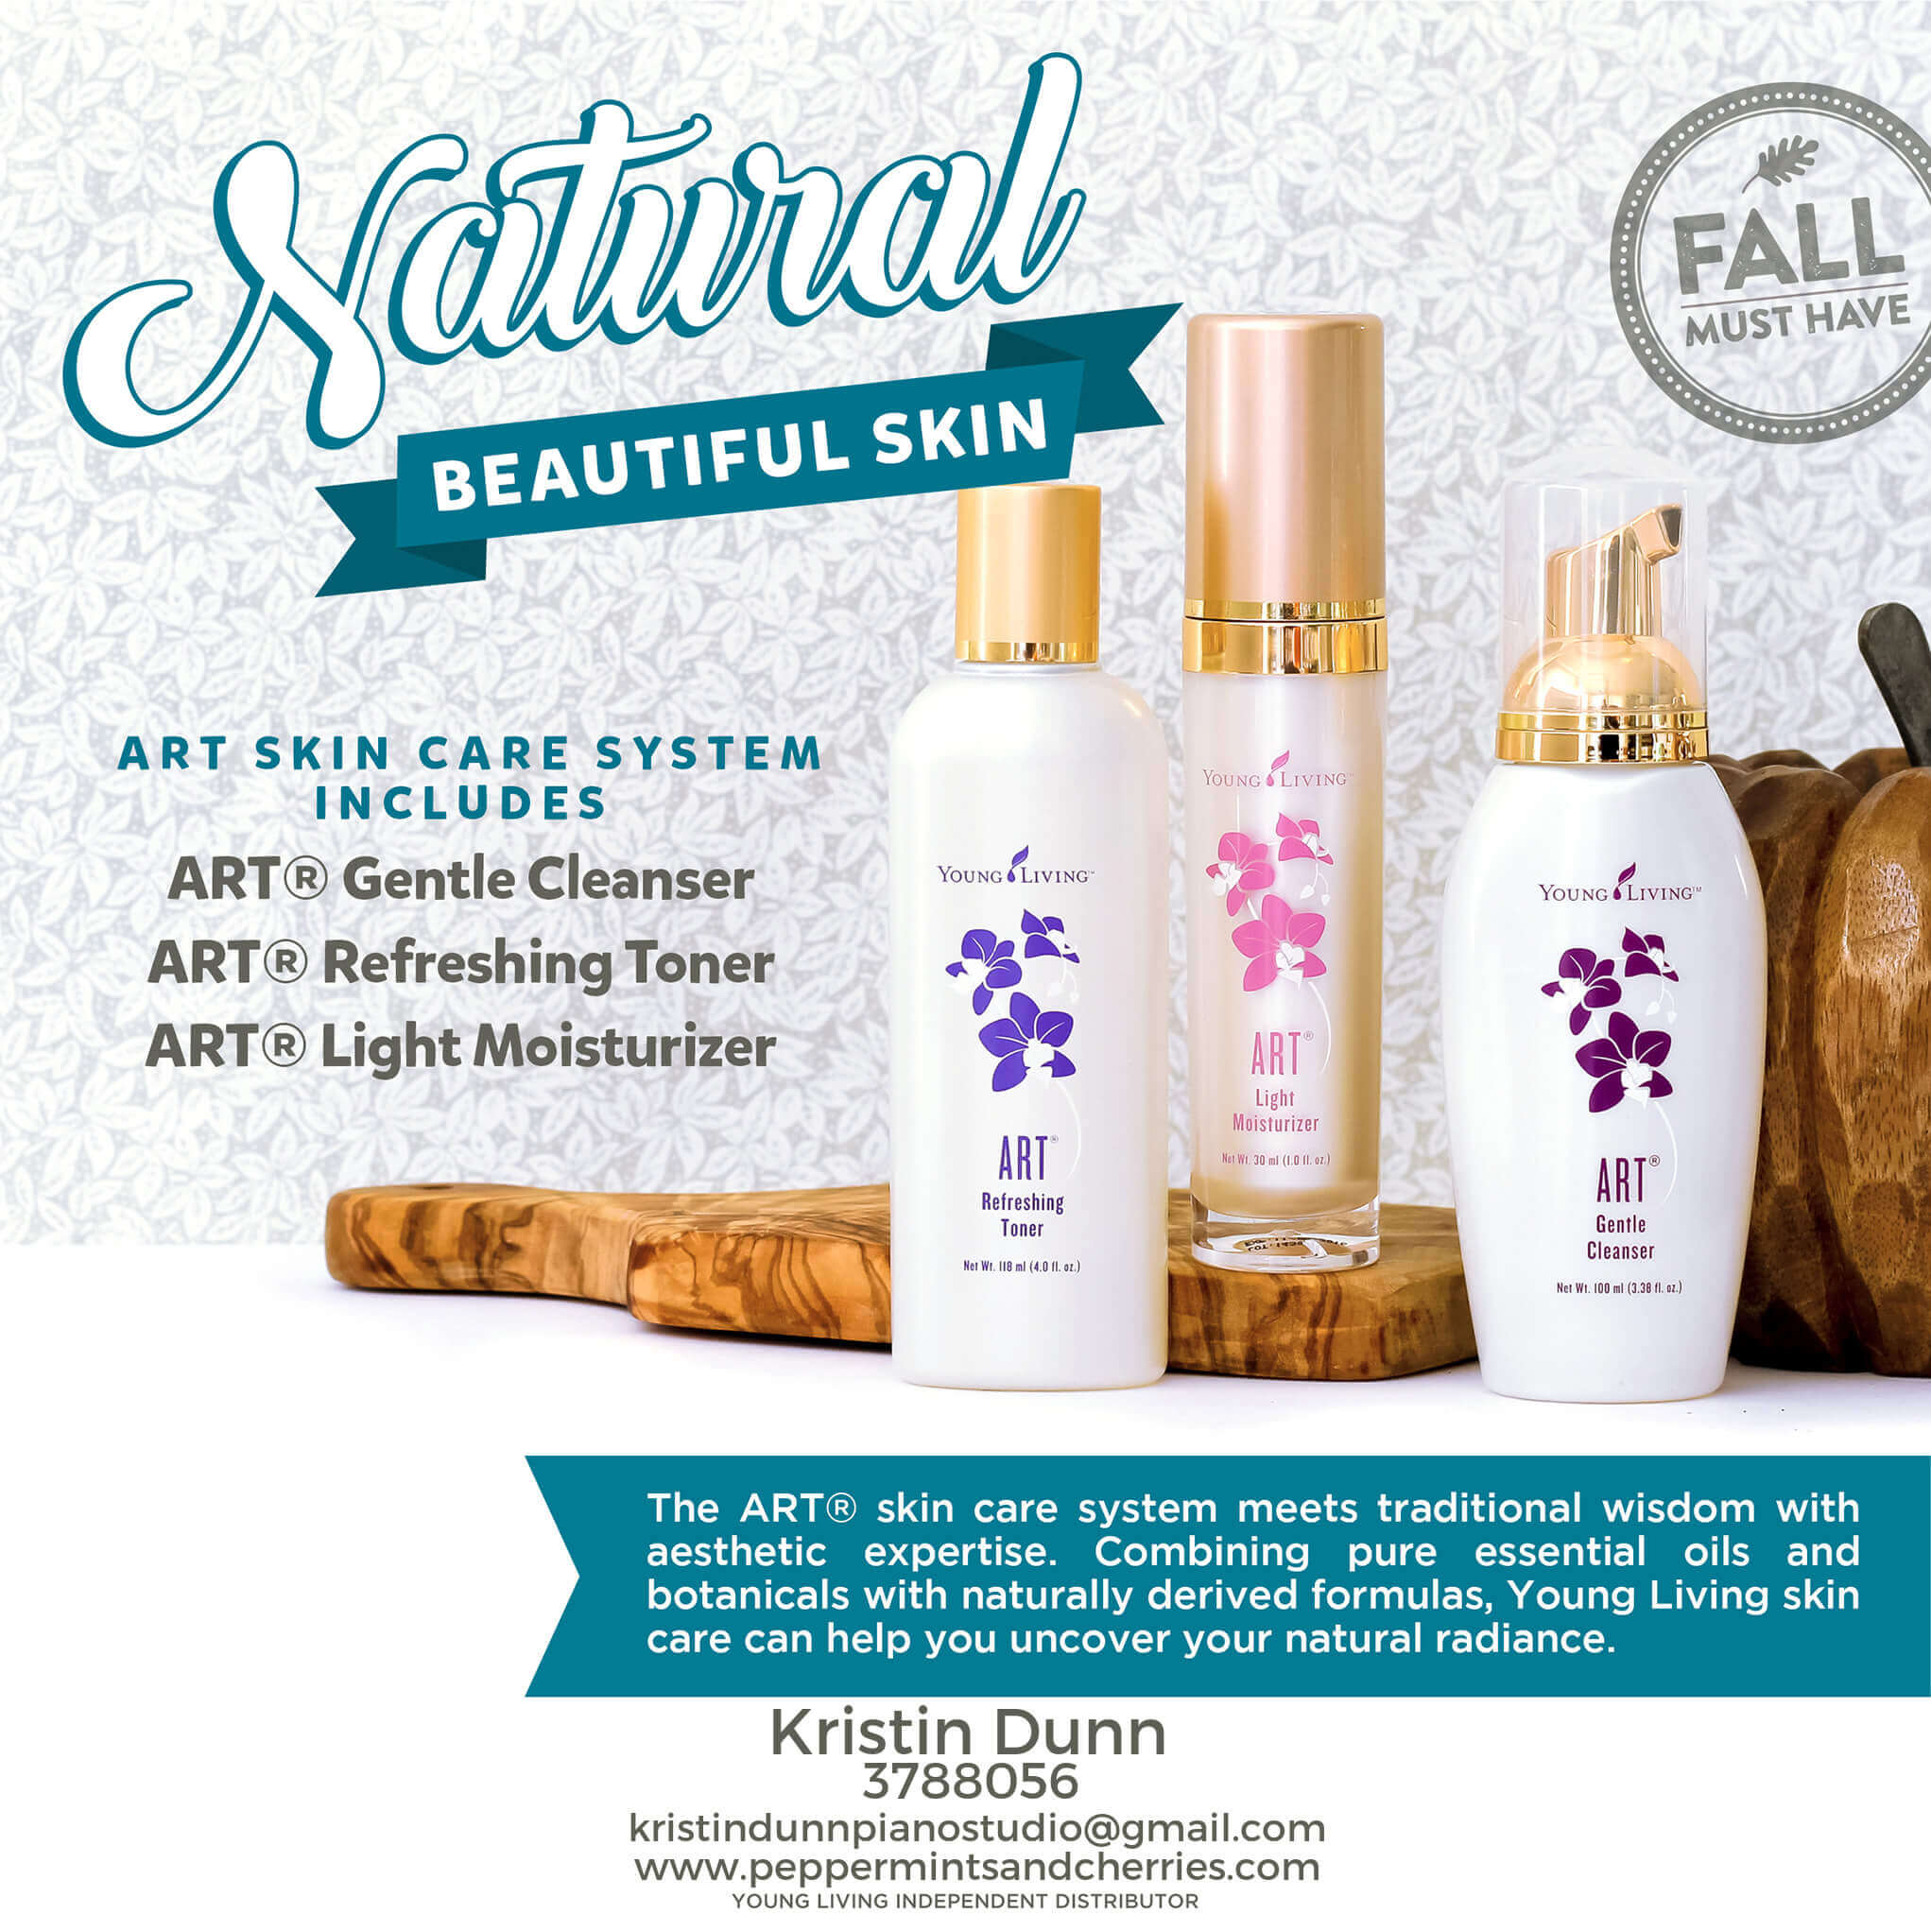 Young Living's Art Skin Care System